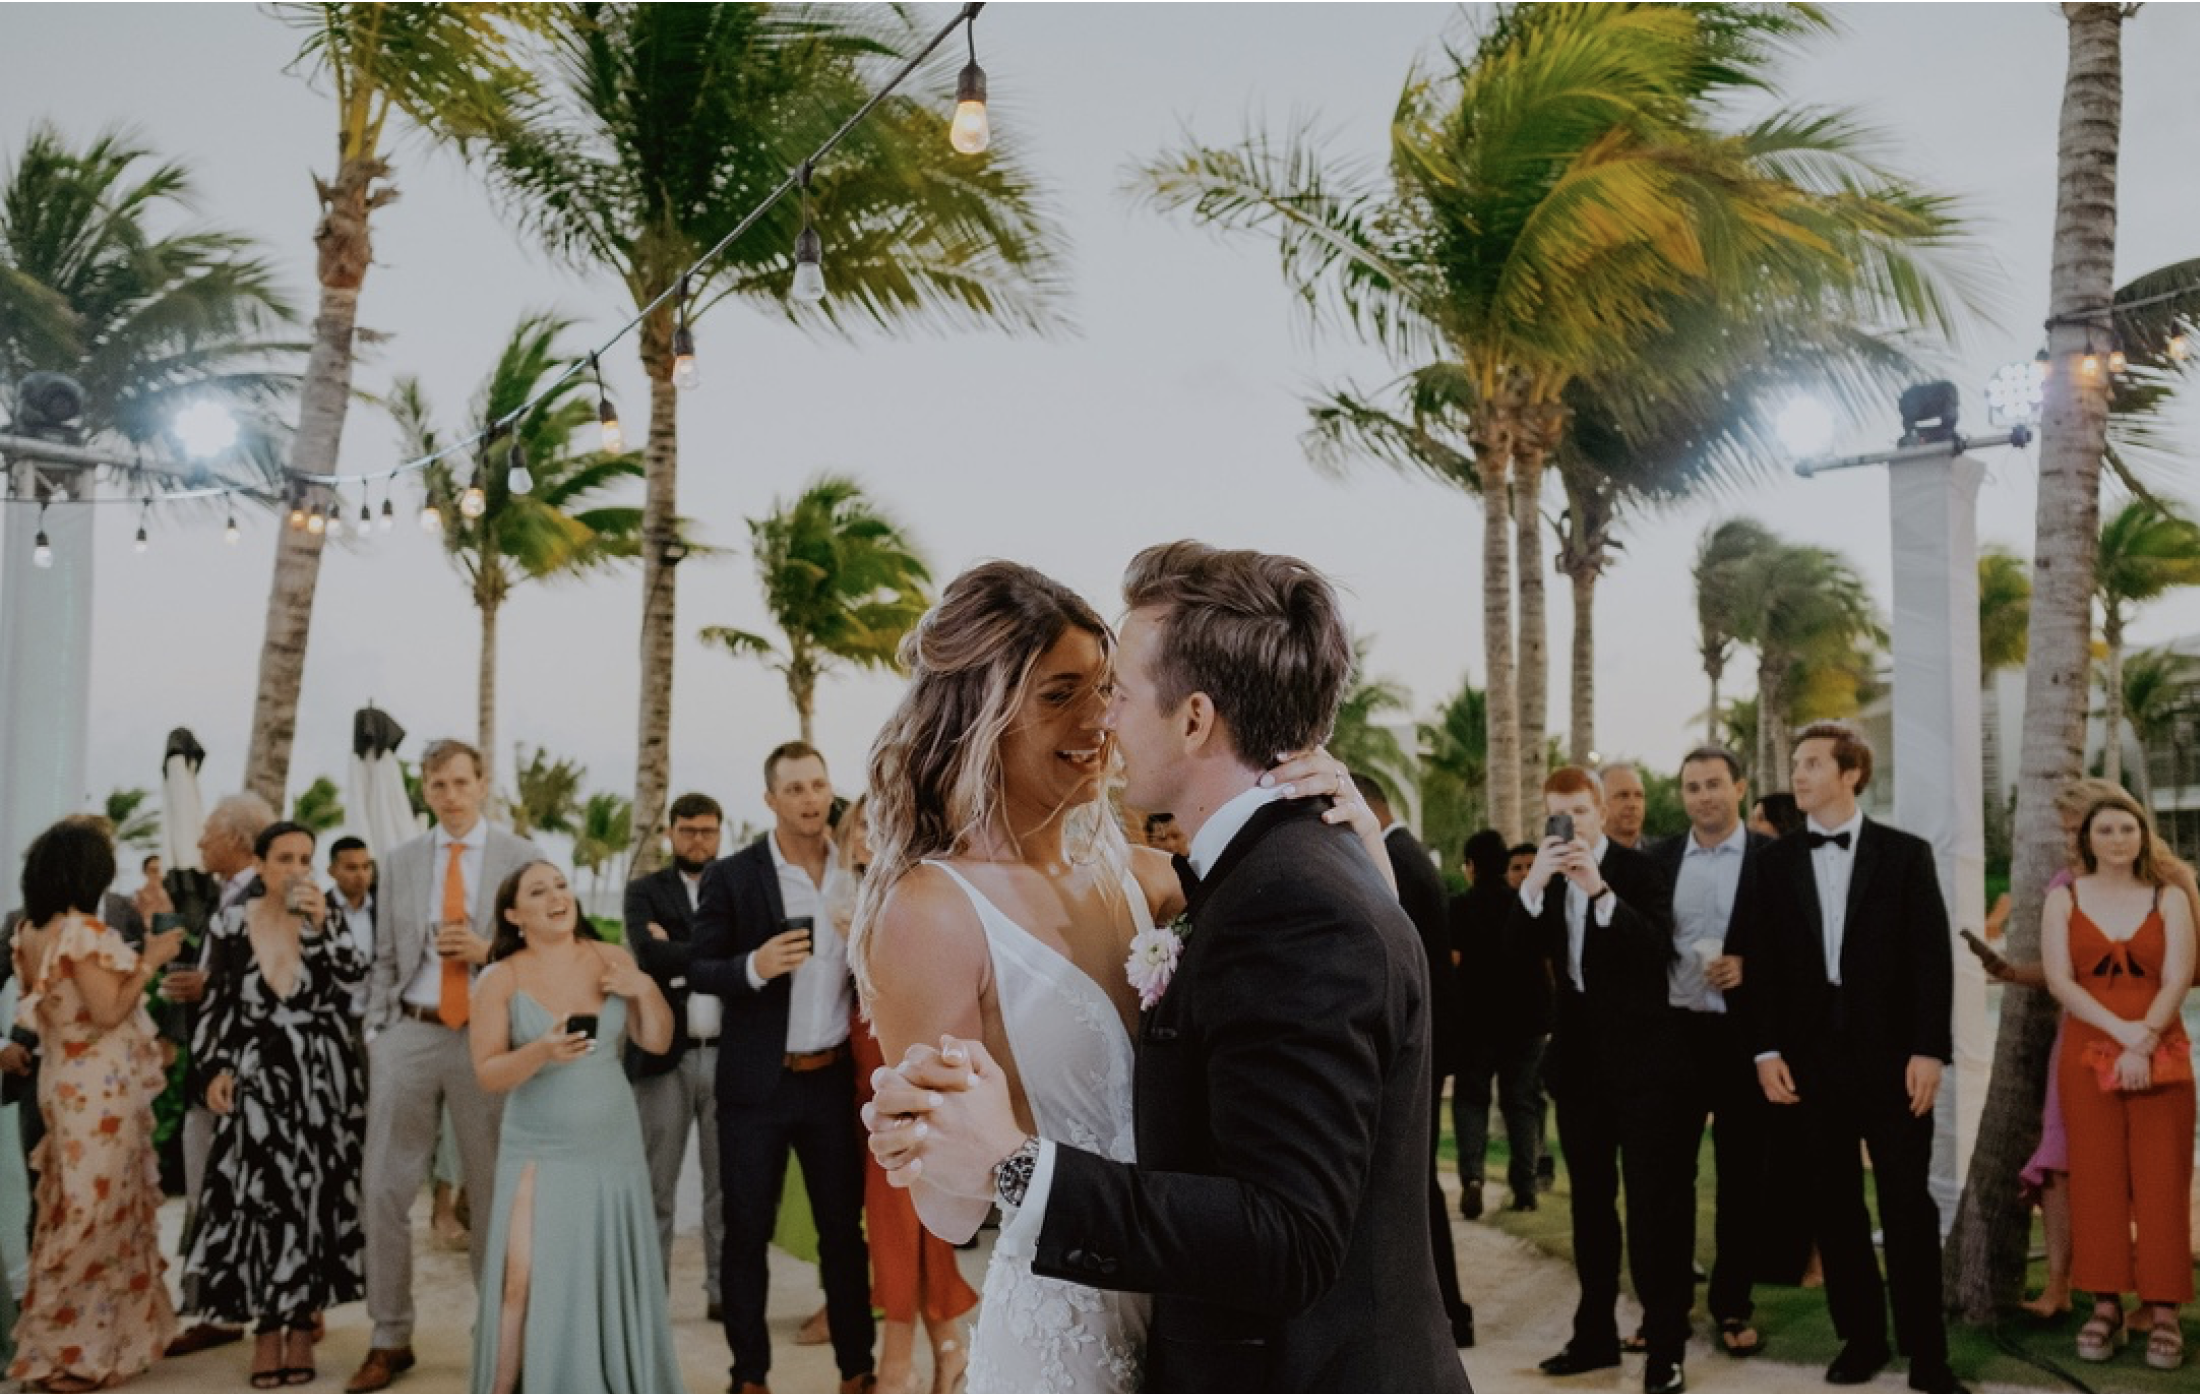 Michael & Alley's Wedding in Mexico - Featured Wedding